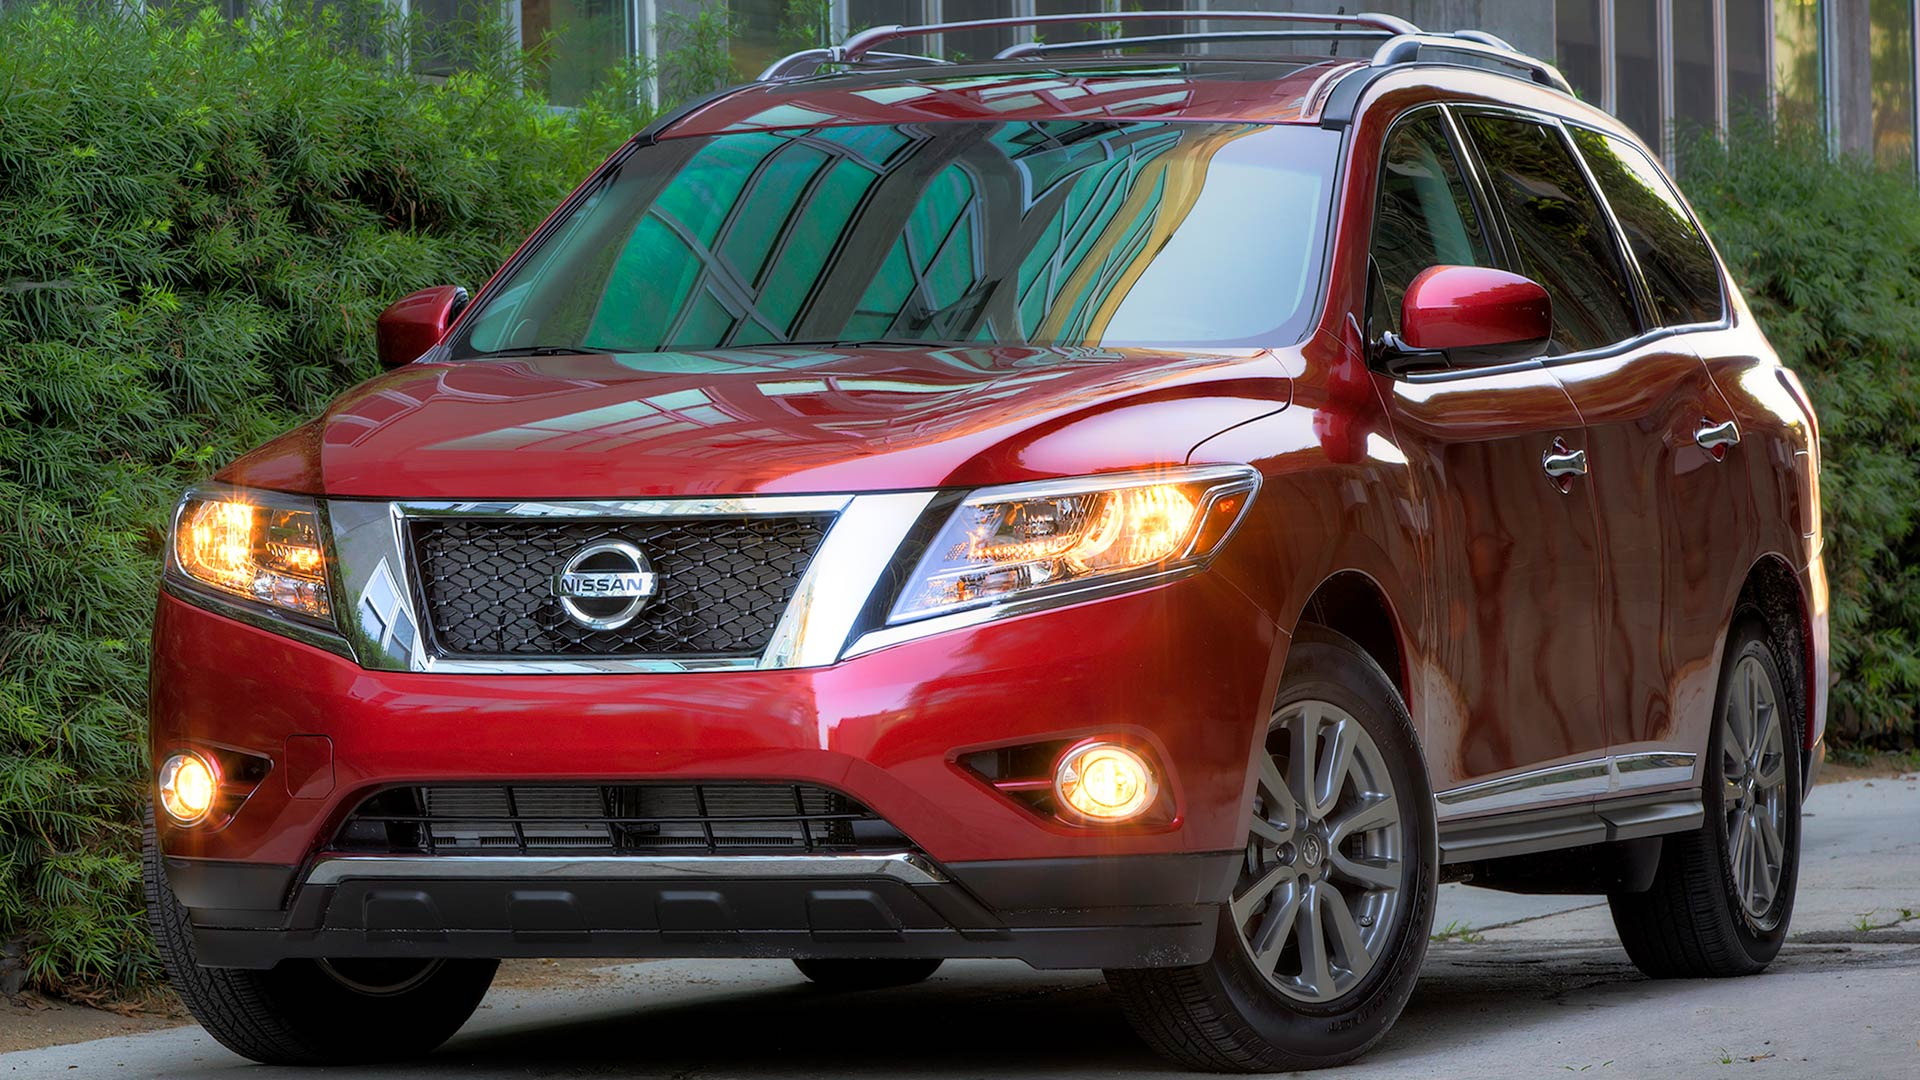 2013 Nissan Pathfinder 4-door SUV